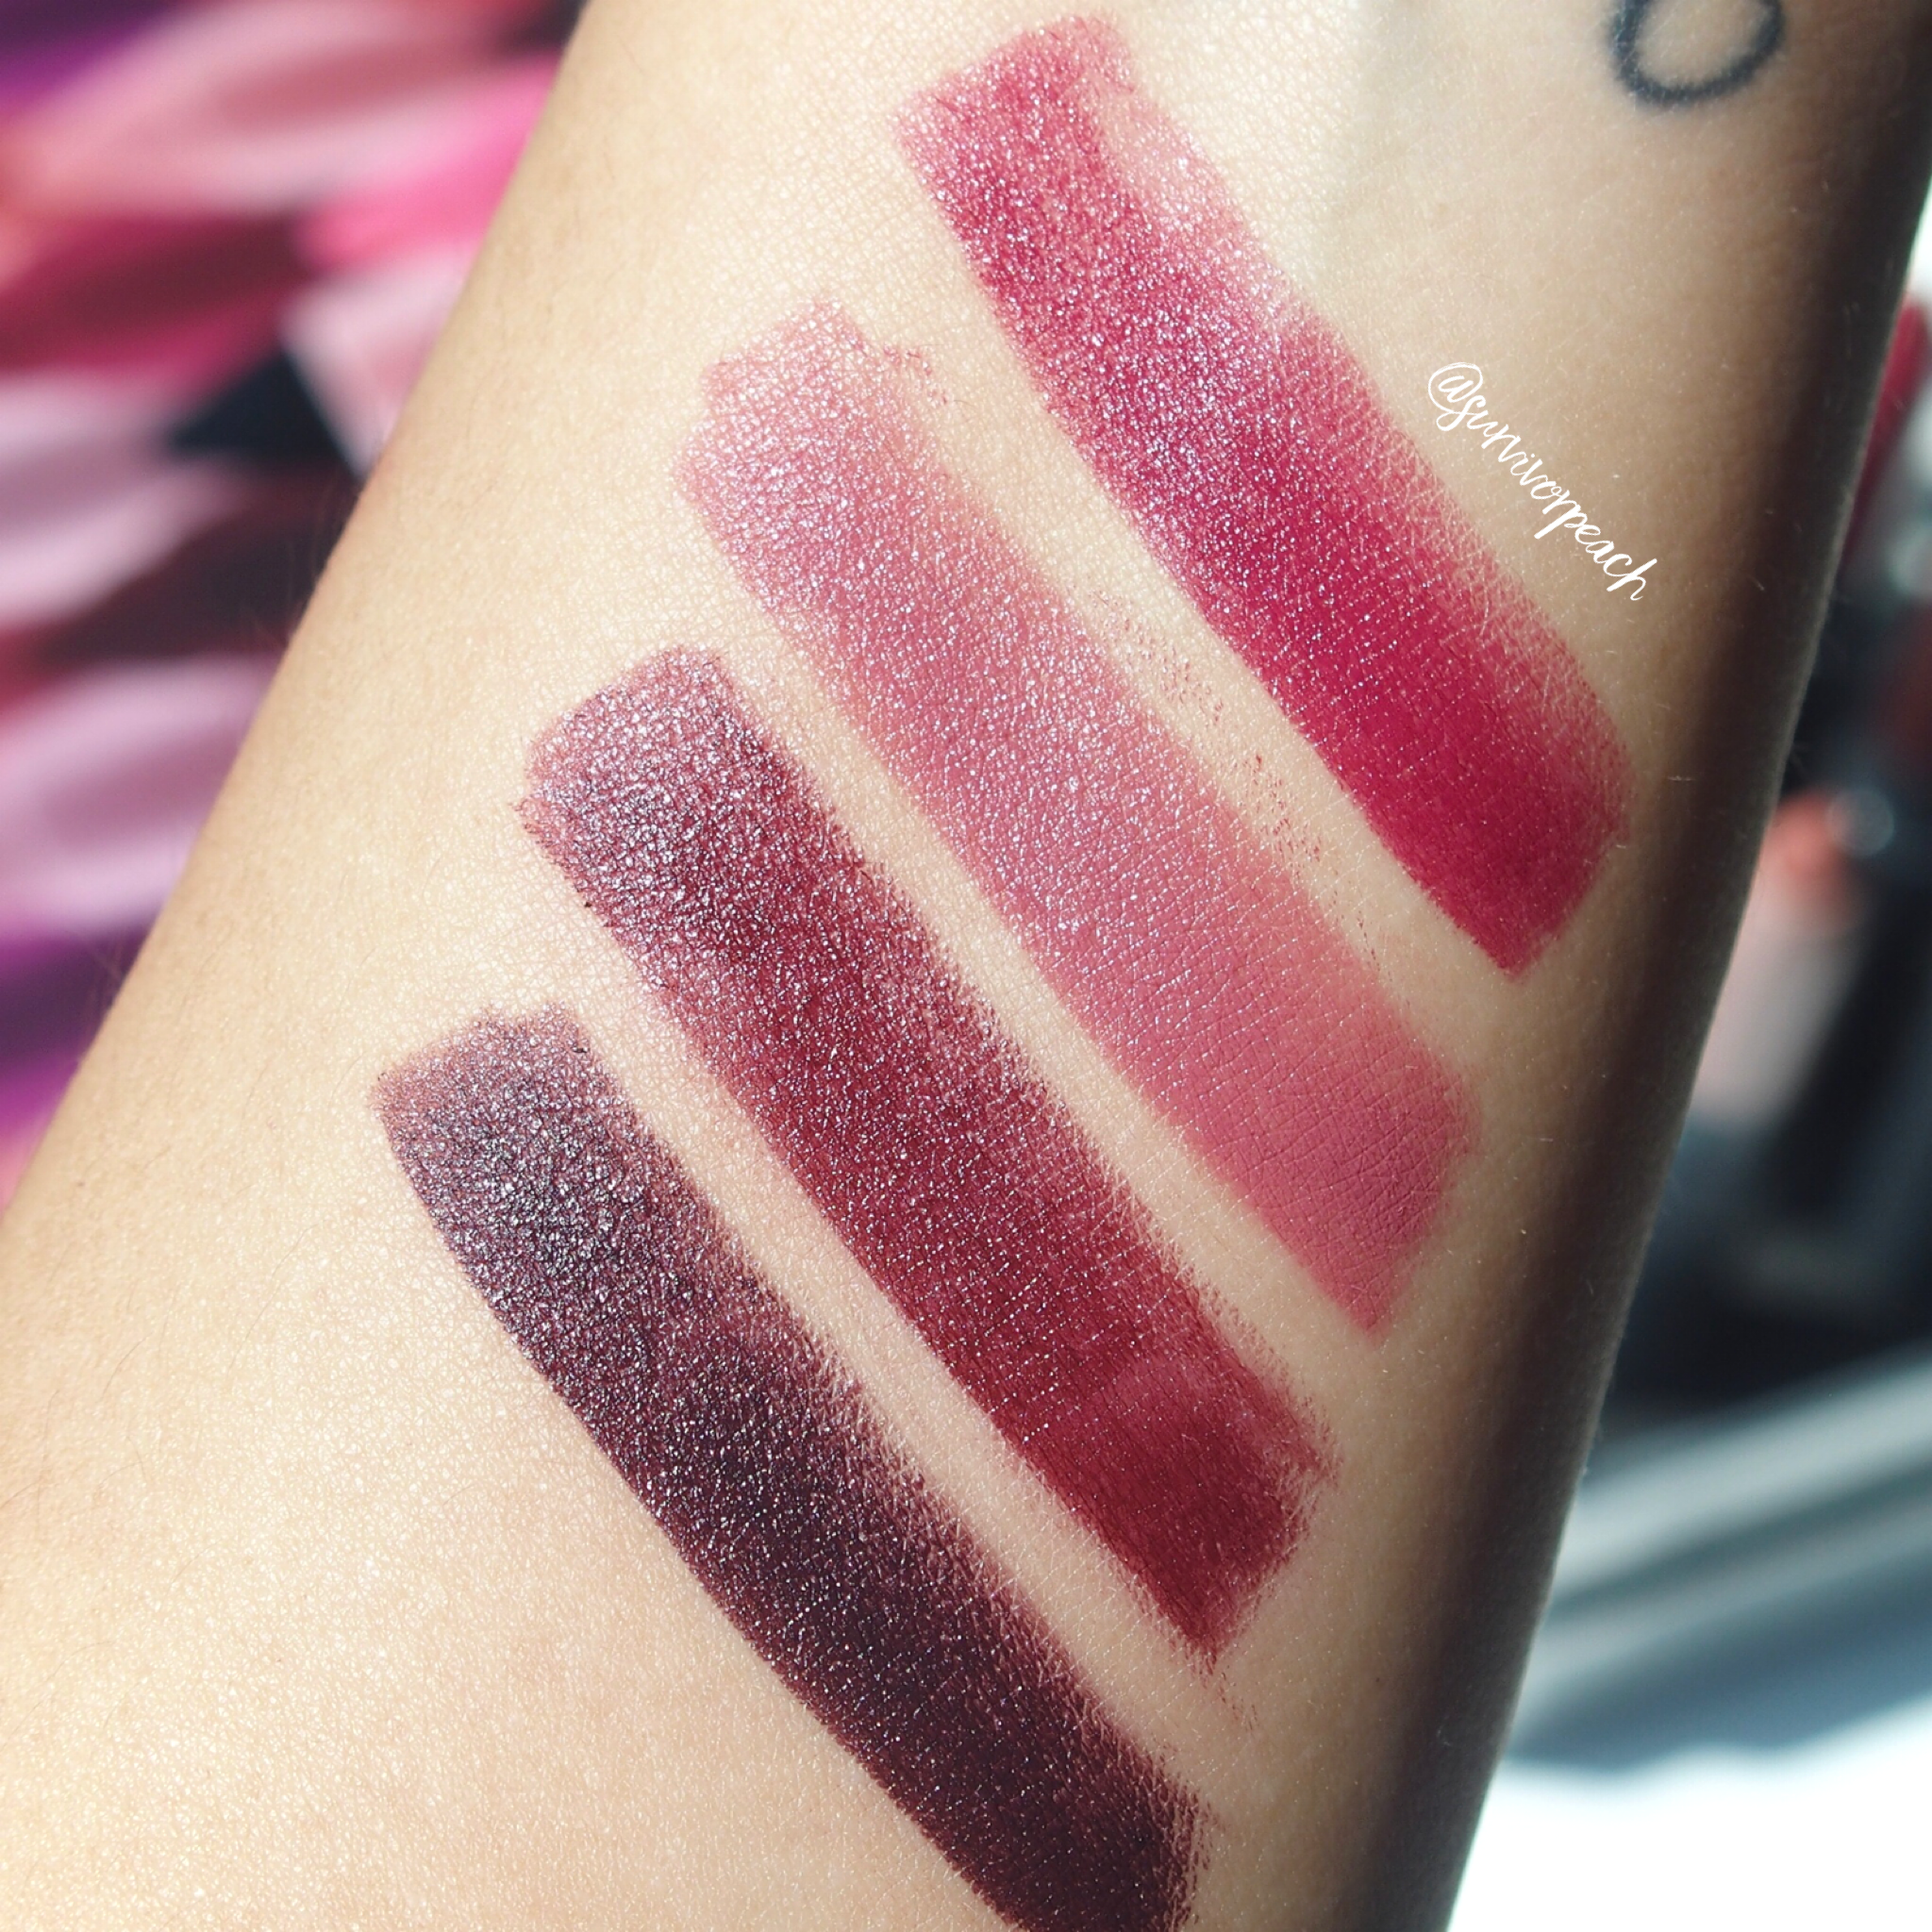 Swatches of the Bite Beauty Matte Creme Lip Crayon in shades Aubergine, Pastille, Truffle, Black Truffle